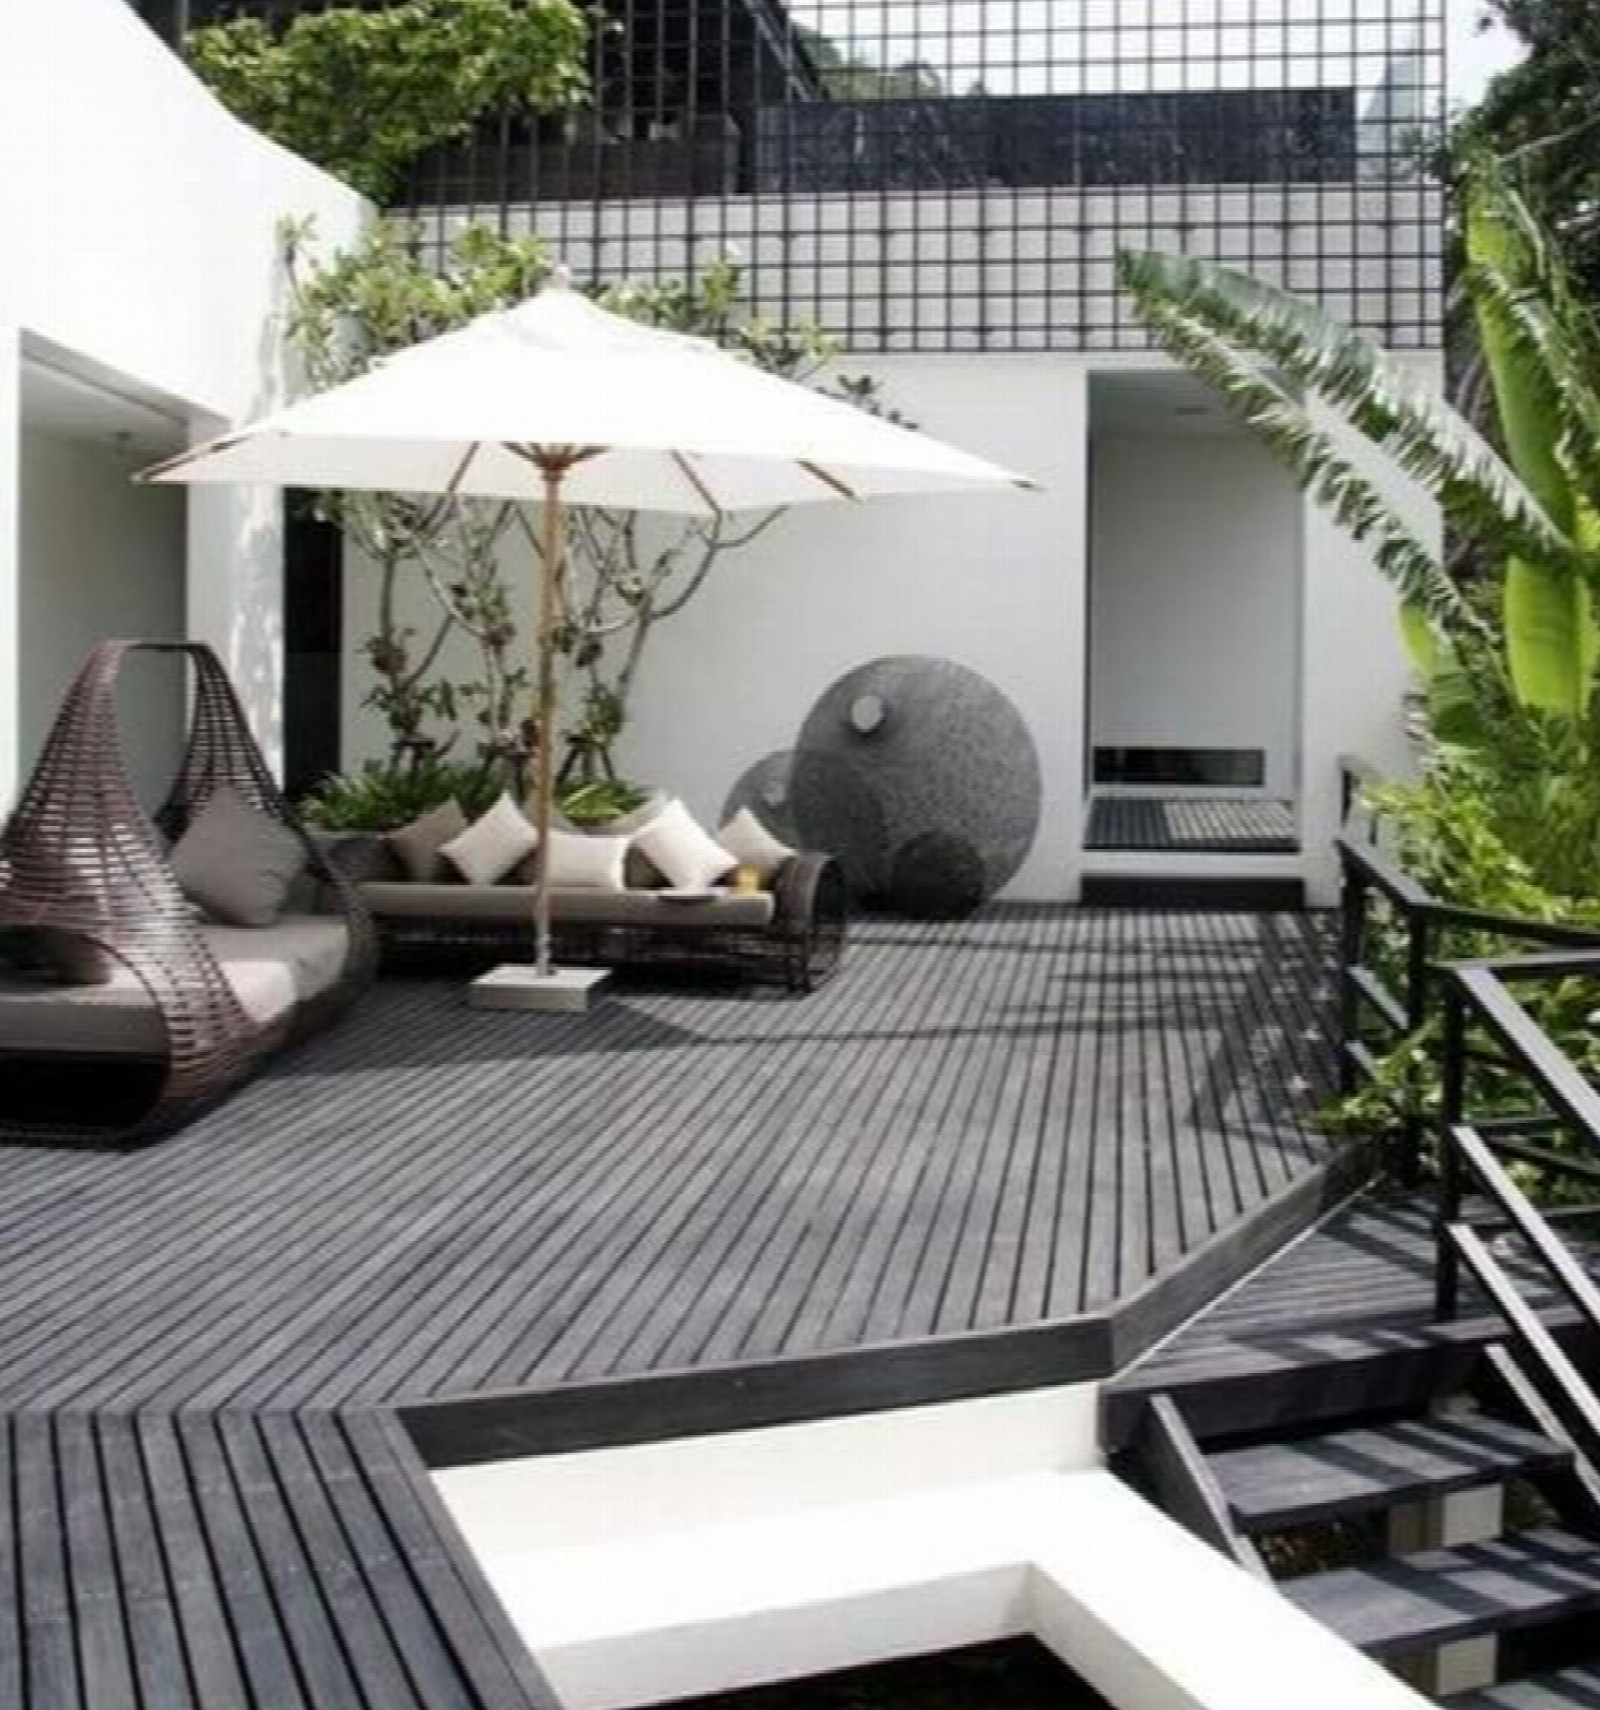 Lame Terrasse Composite Gris Anthracite Lame De Terrasse Composite - Gris Anthracite - Composite